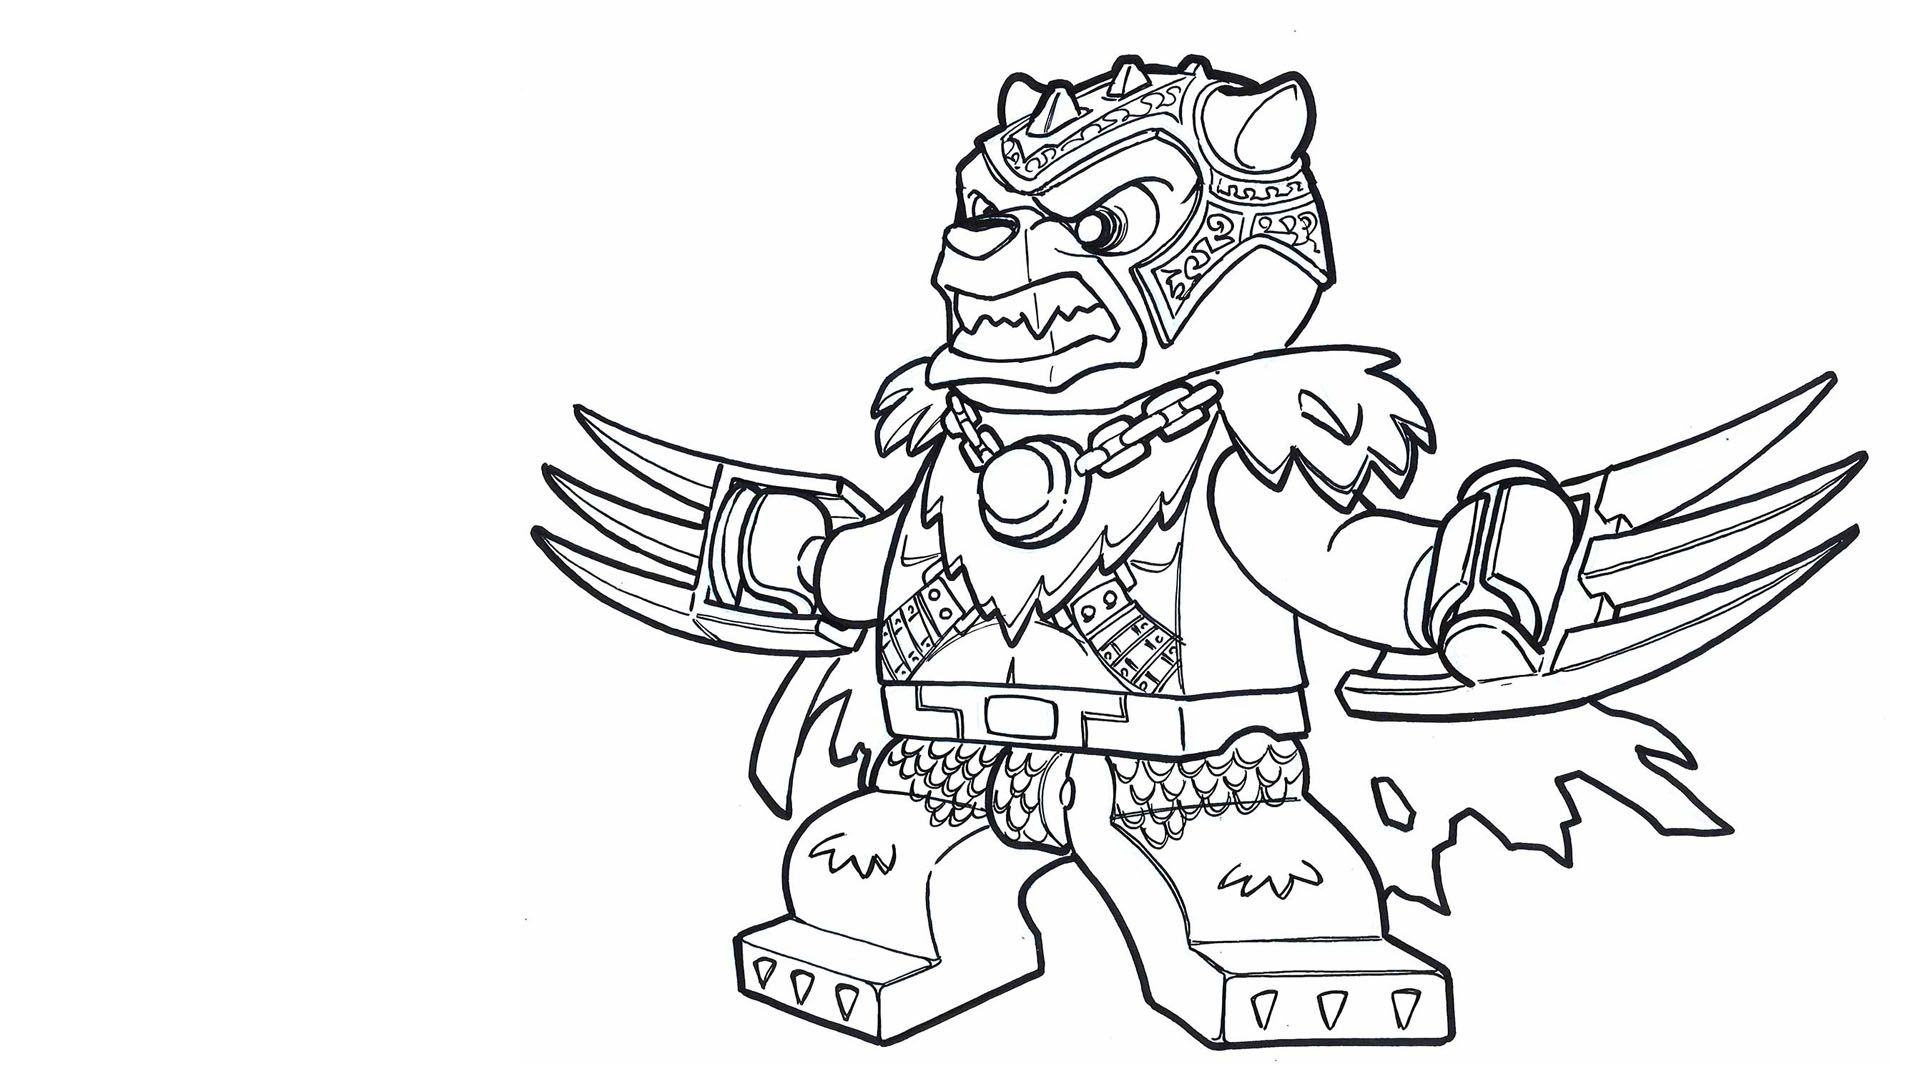 Lego chima coloring pictures - Chapter2 Creating Chima Explore Chima Lego Com Lego Chimacoloring